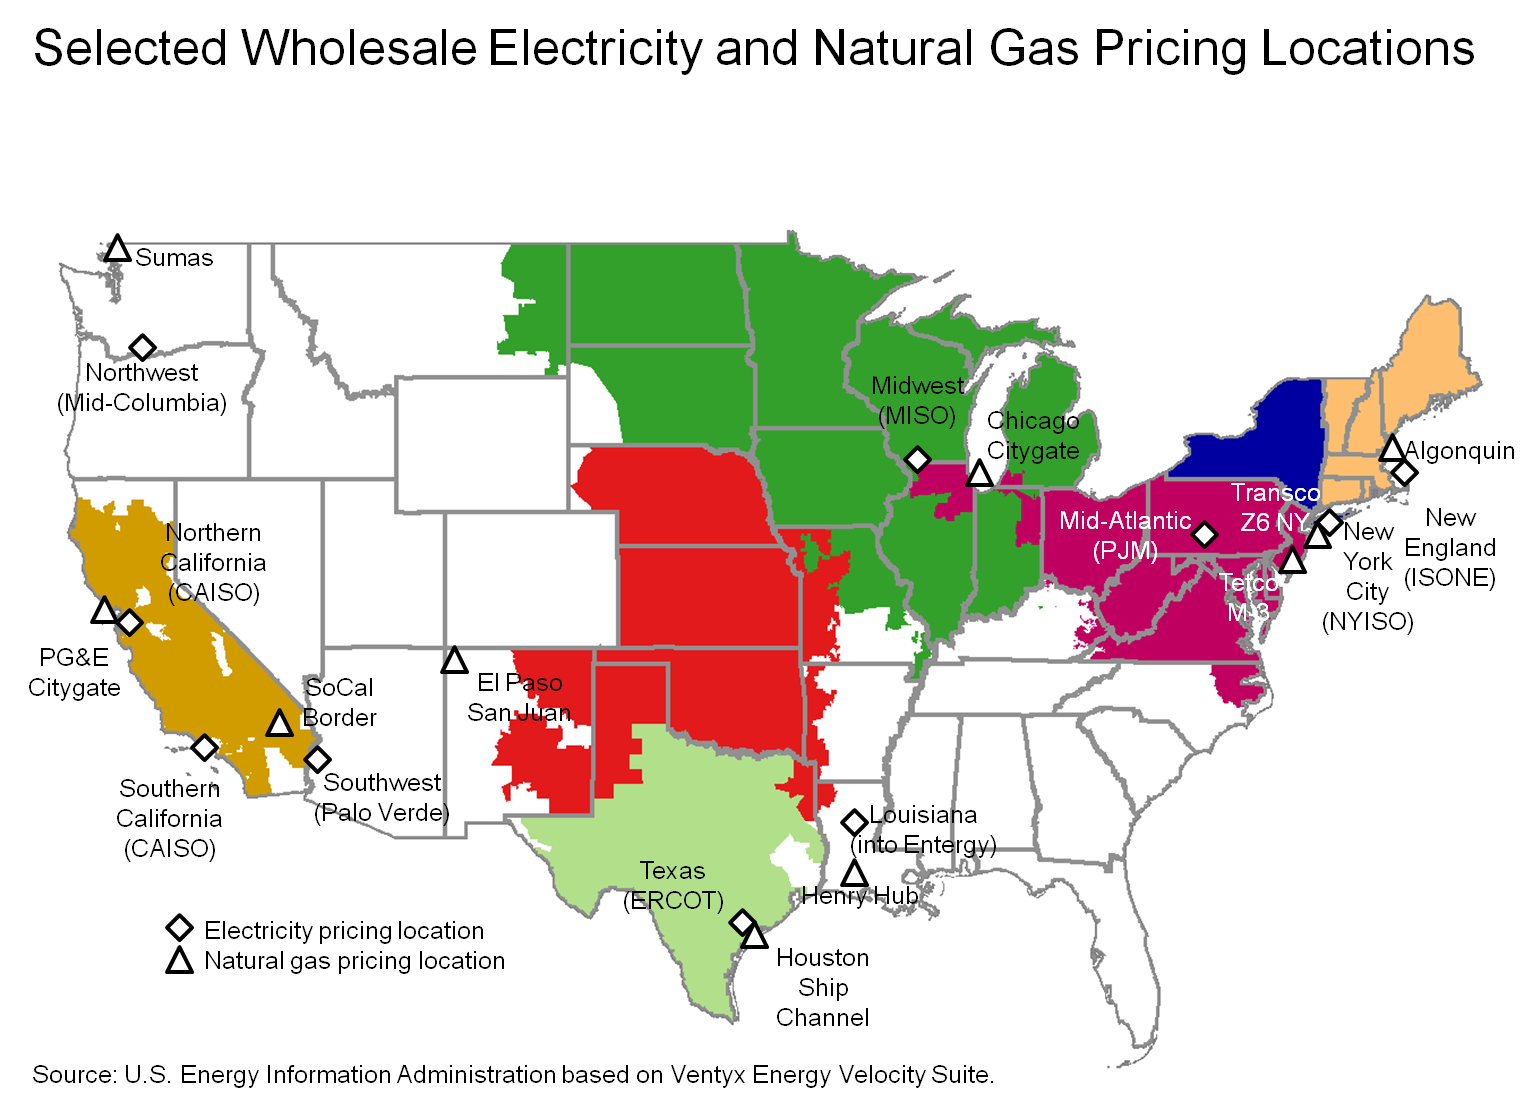 Maps US Energy Information Administration EIA - Us energy map